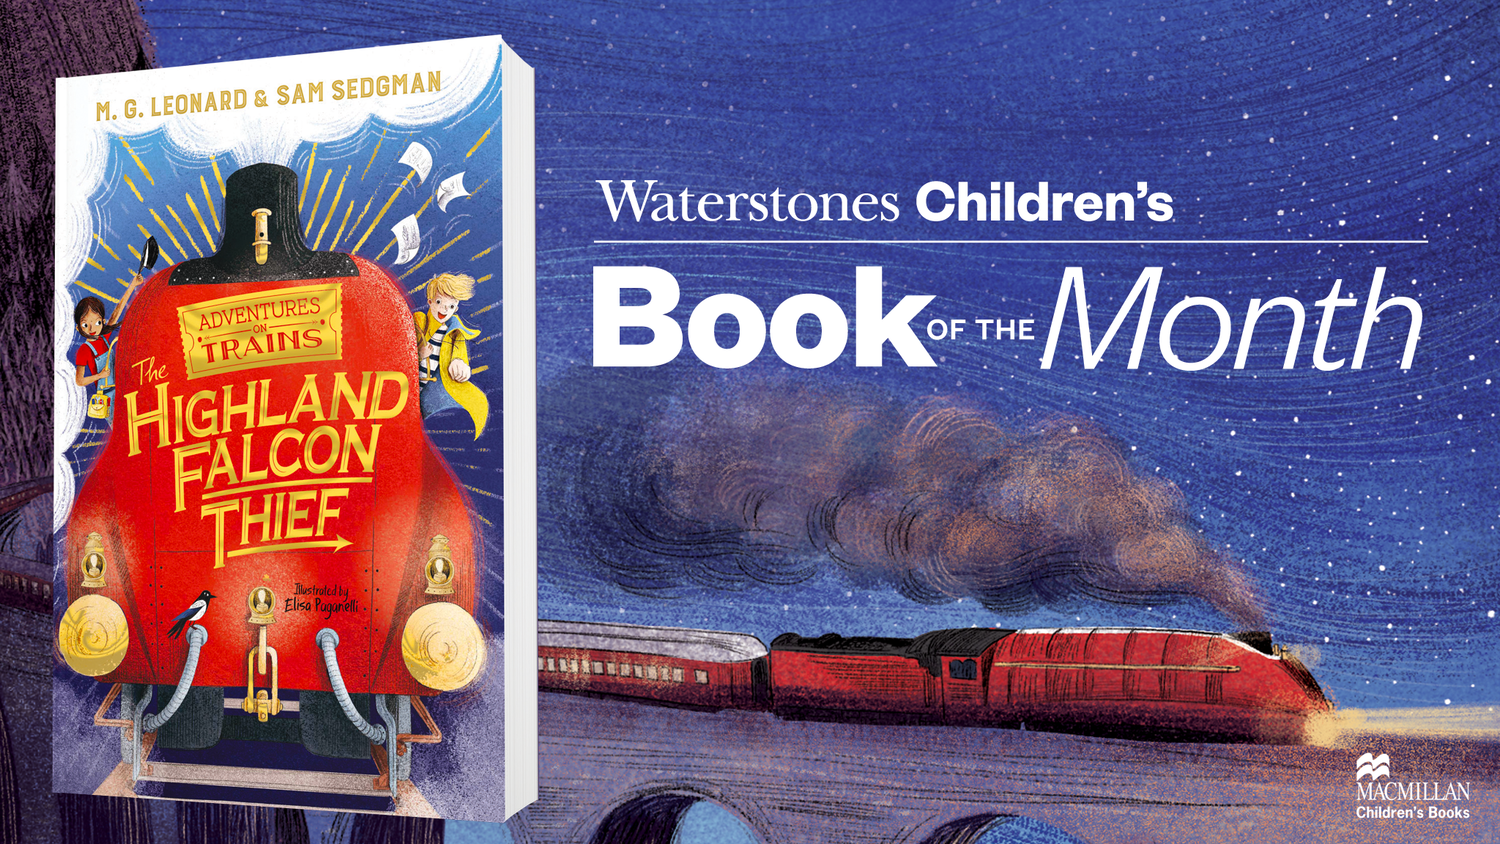 The Highland Falcon Thief is Waterstones Children's Book of the Month — M.  G. Leonard